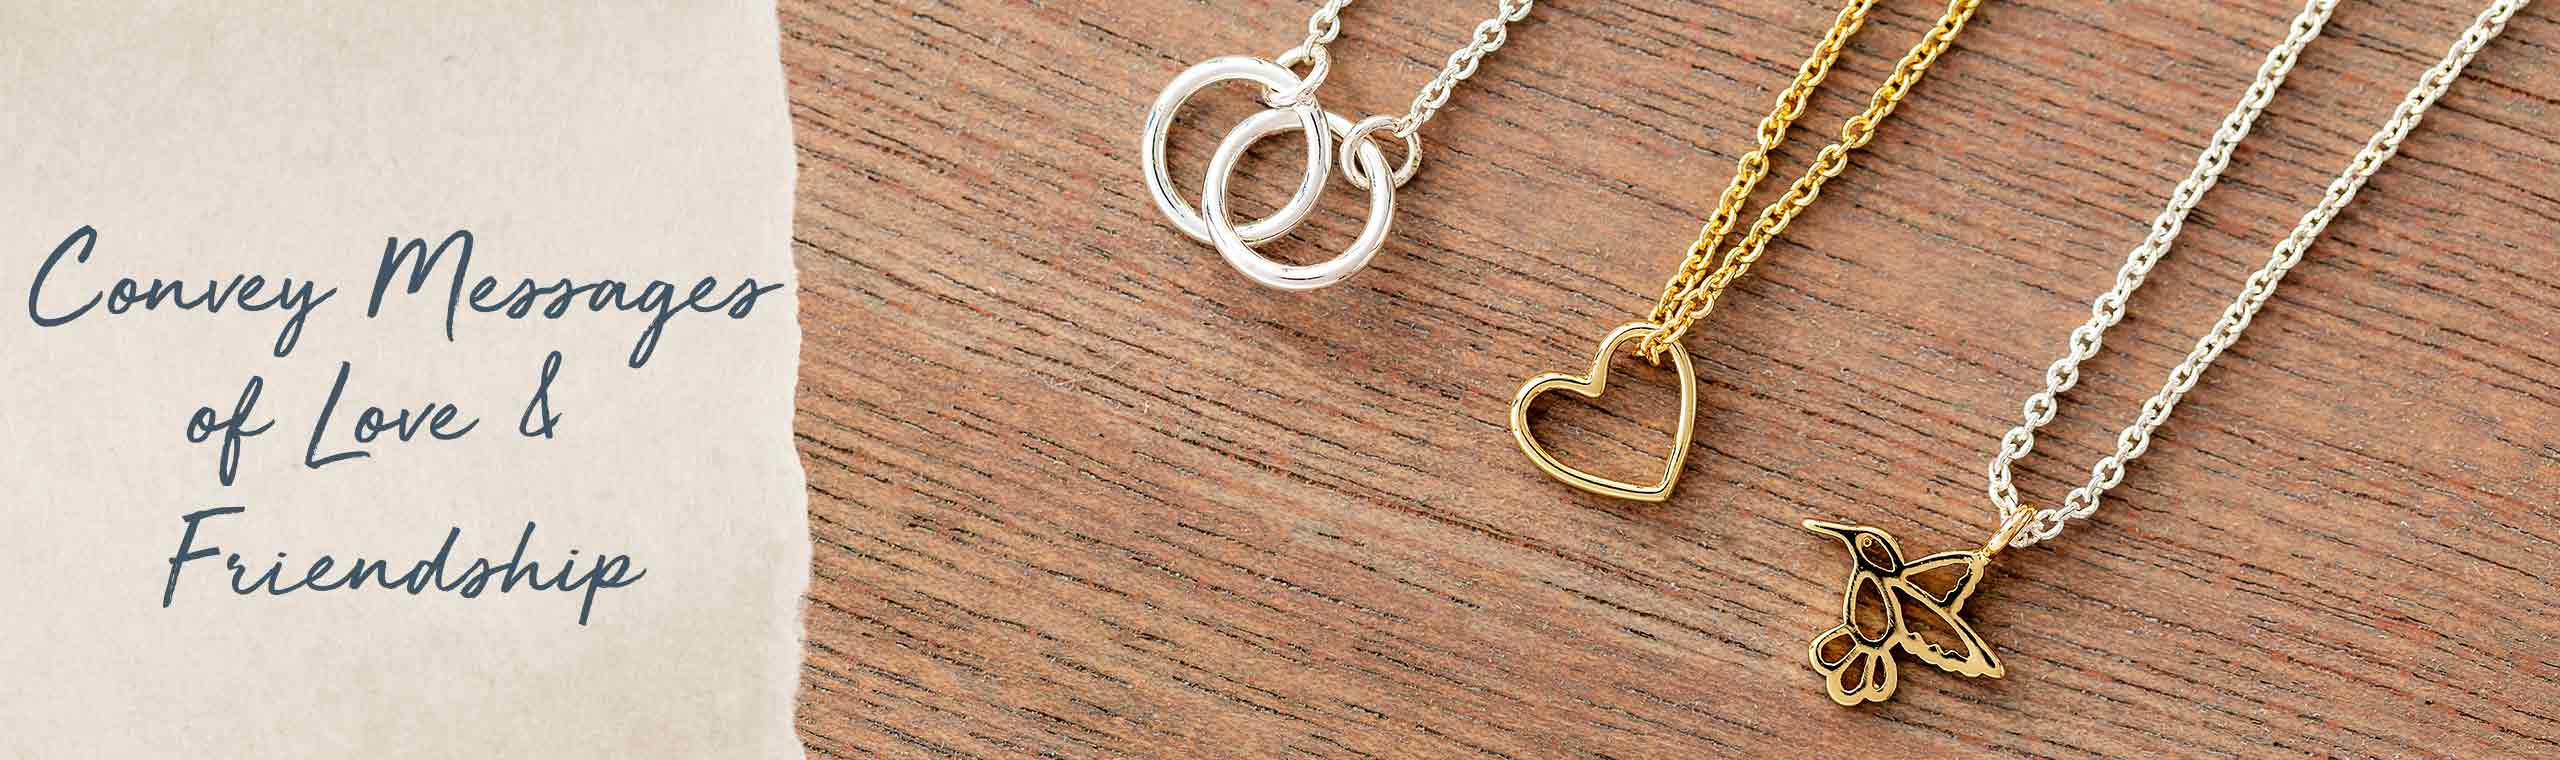 Convey messages of love and Friendship! a gold and silver necklaces